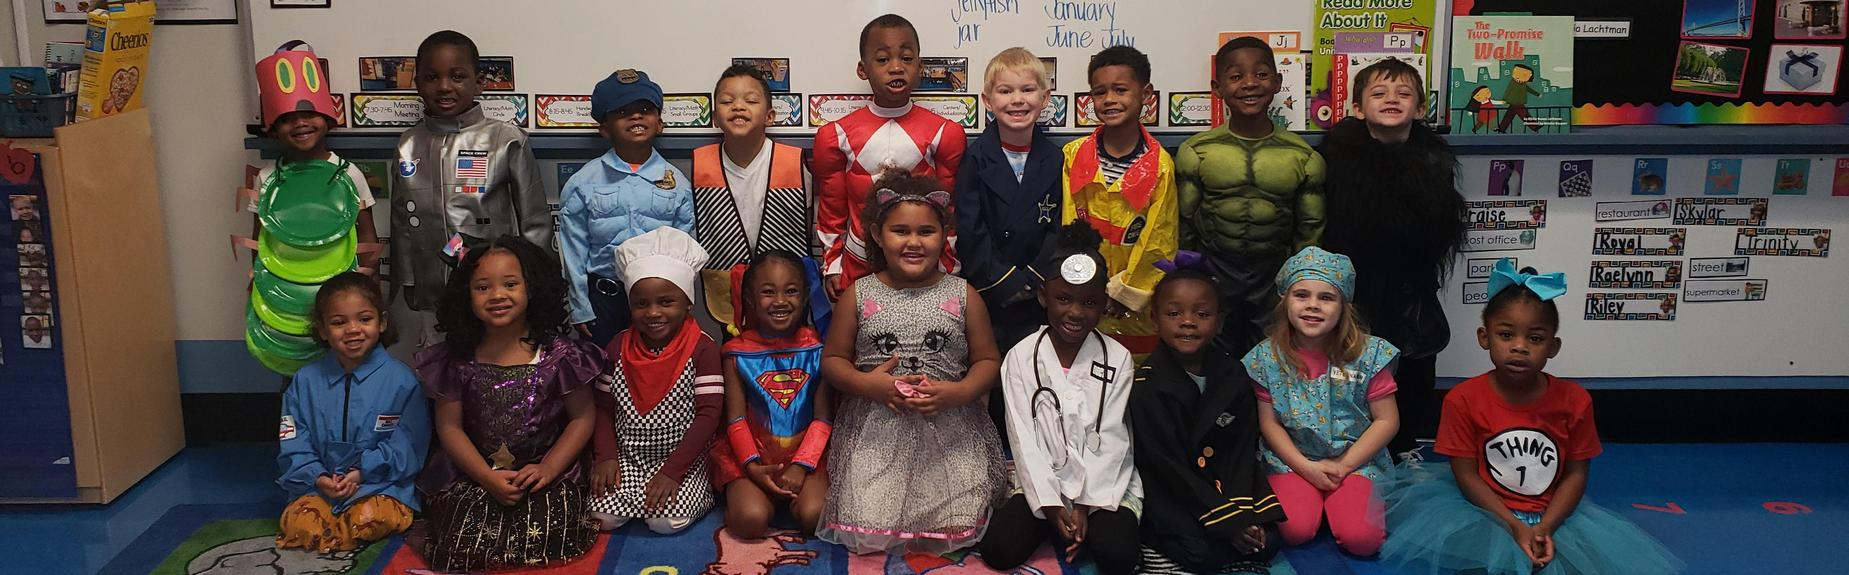 Storybook Character Day